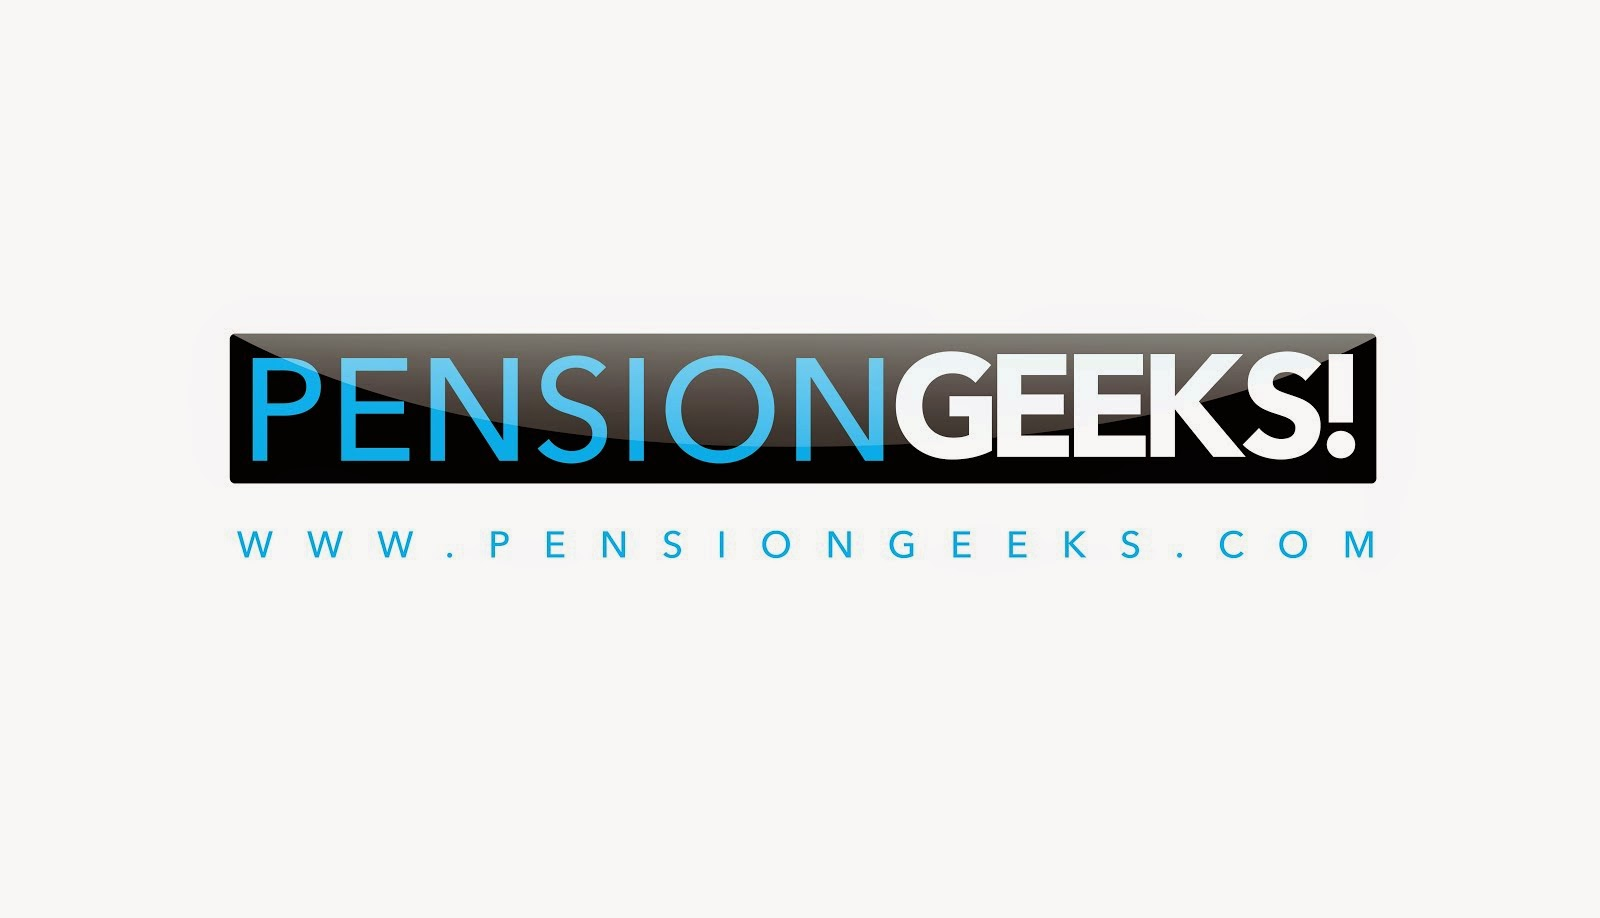 Pension Geeks!